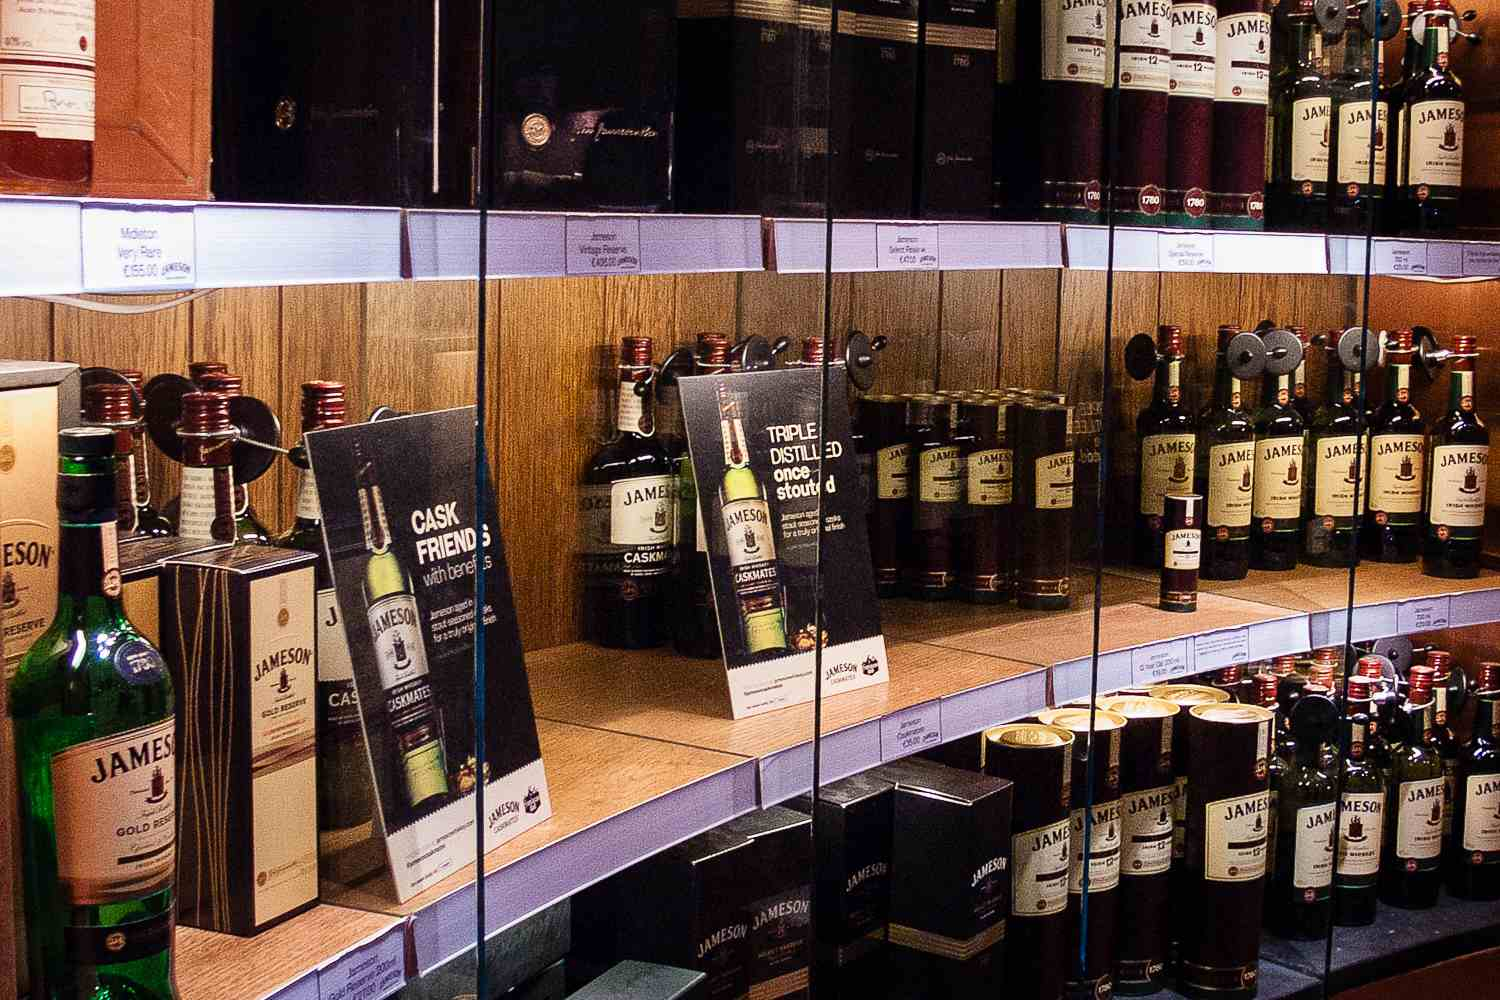 Whiskey galore - do we need to say more?